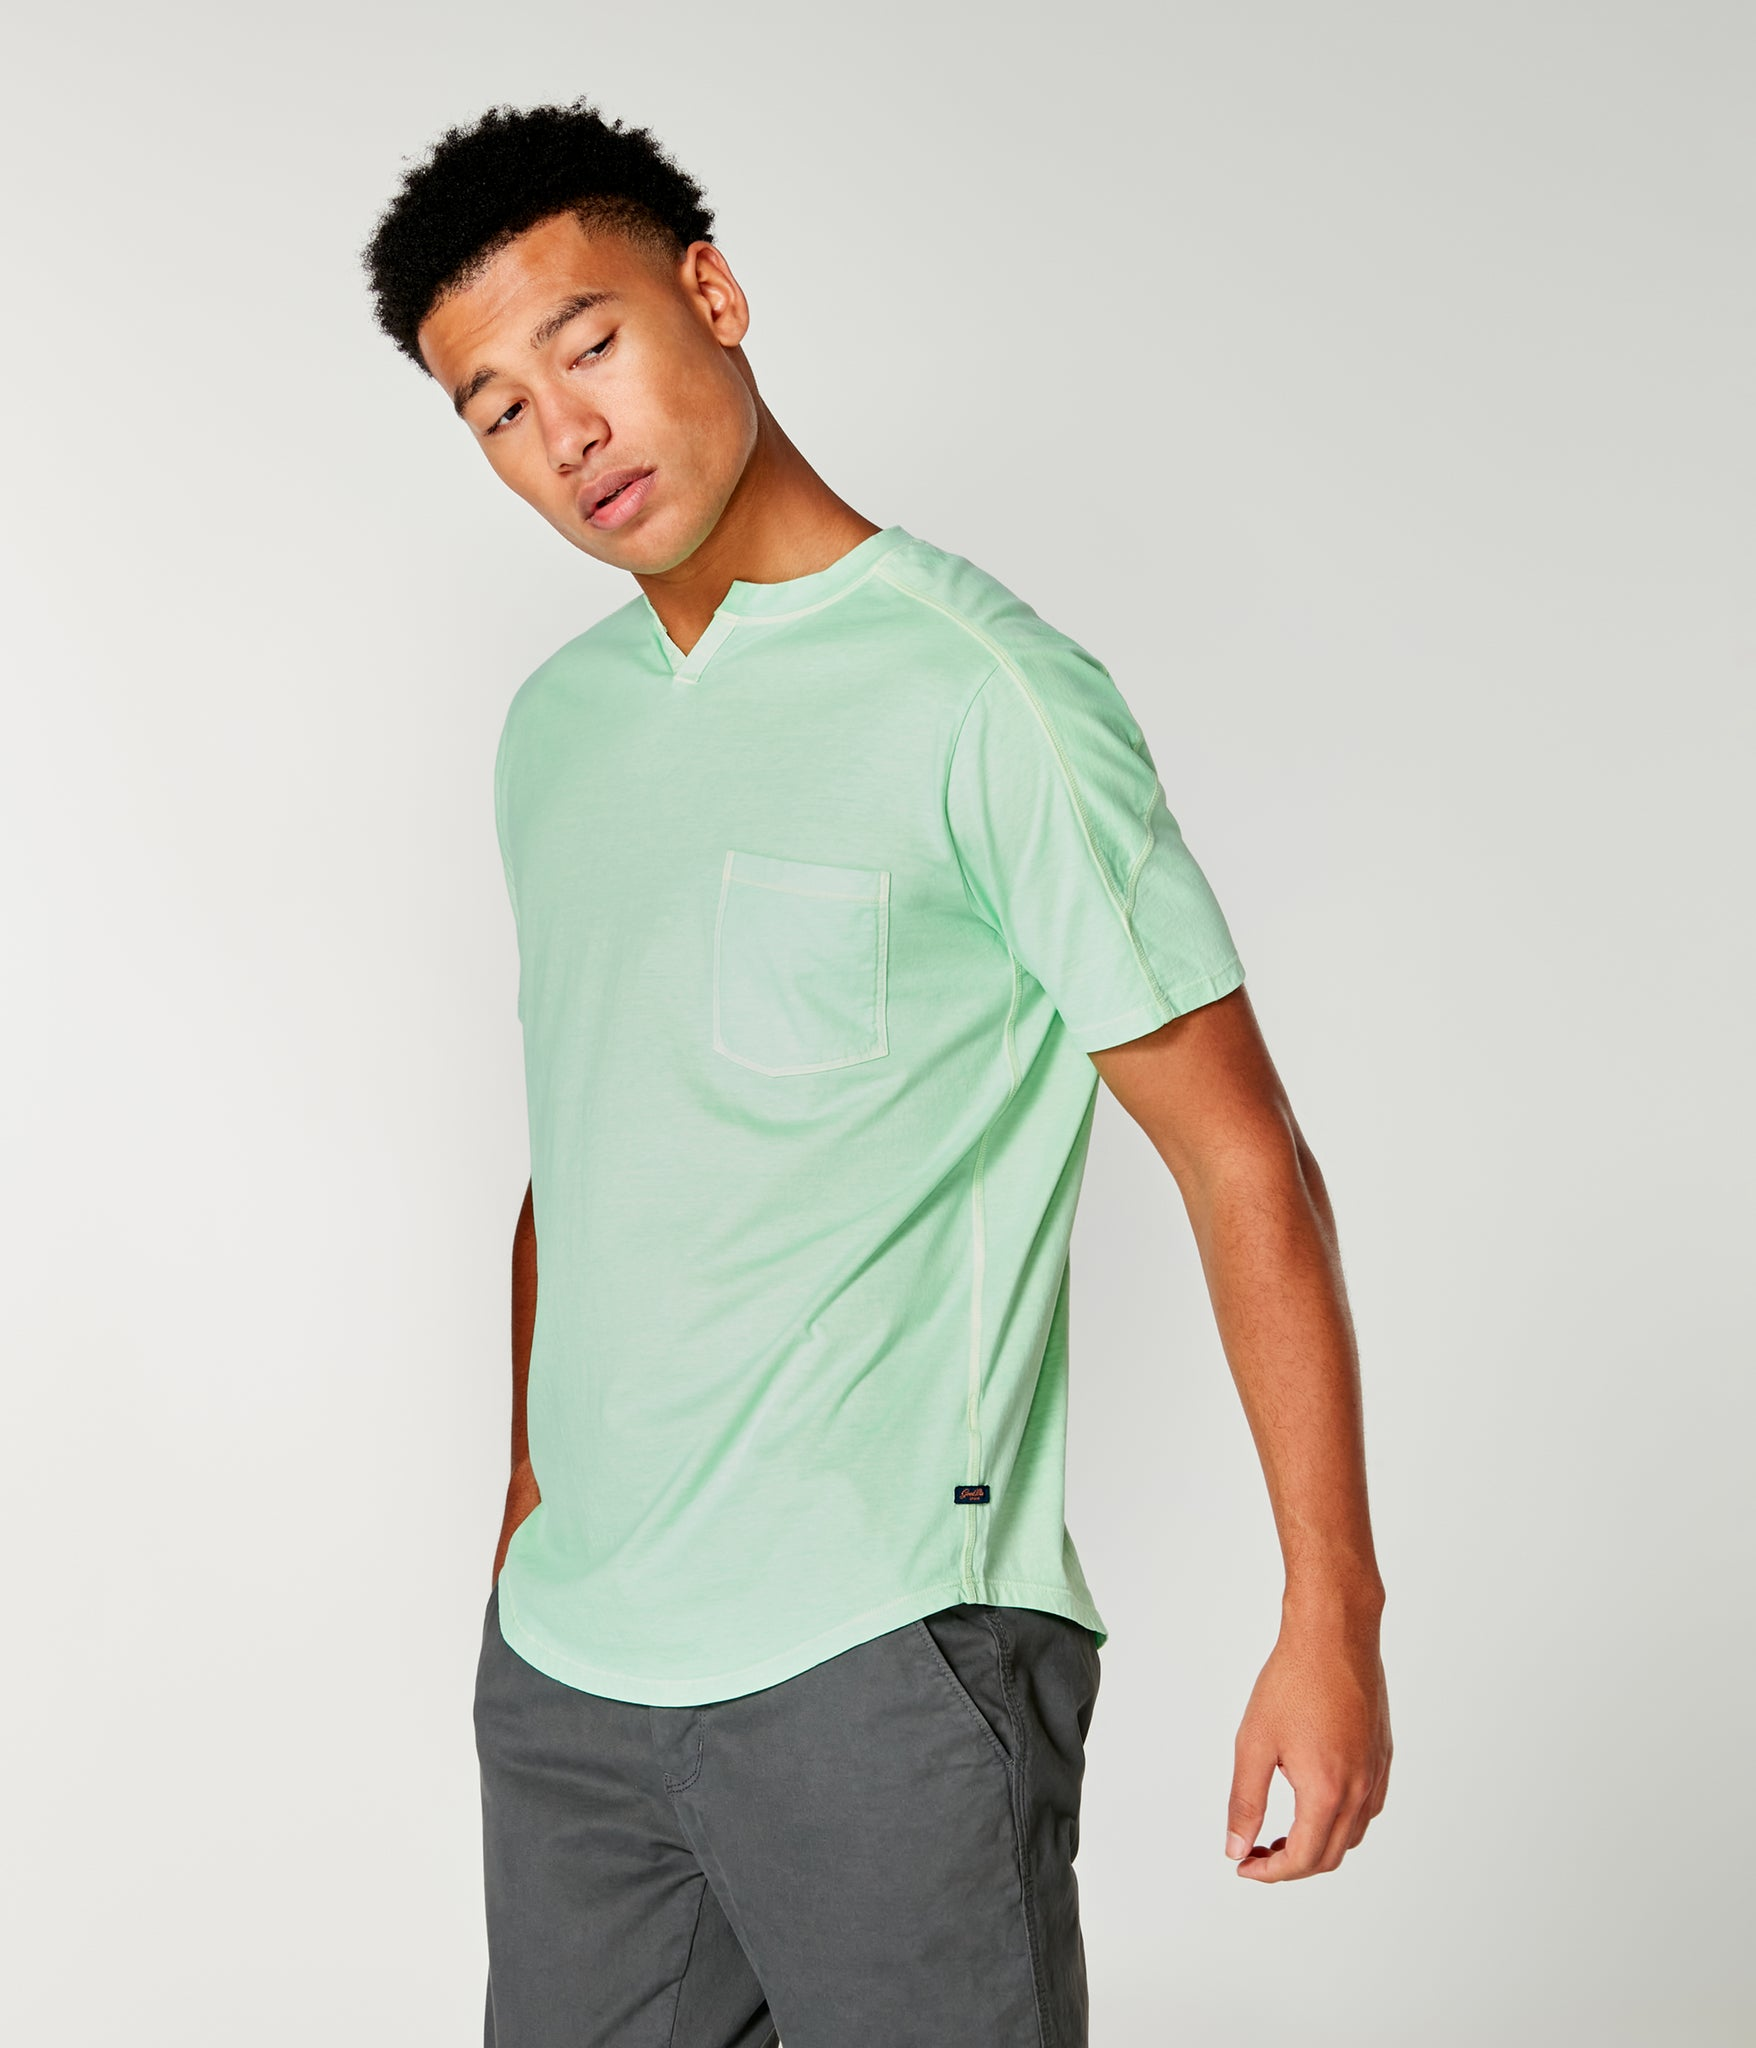 Premium Cotton Jersey Notch Neck Crew - Midori